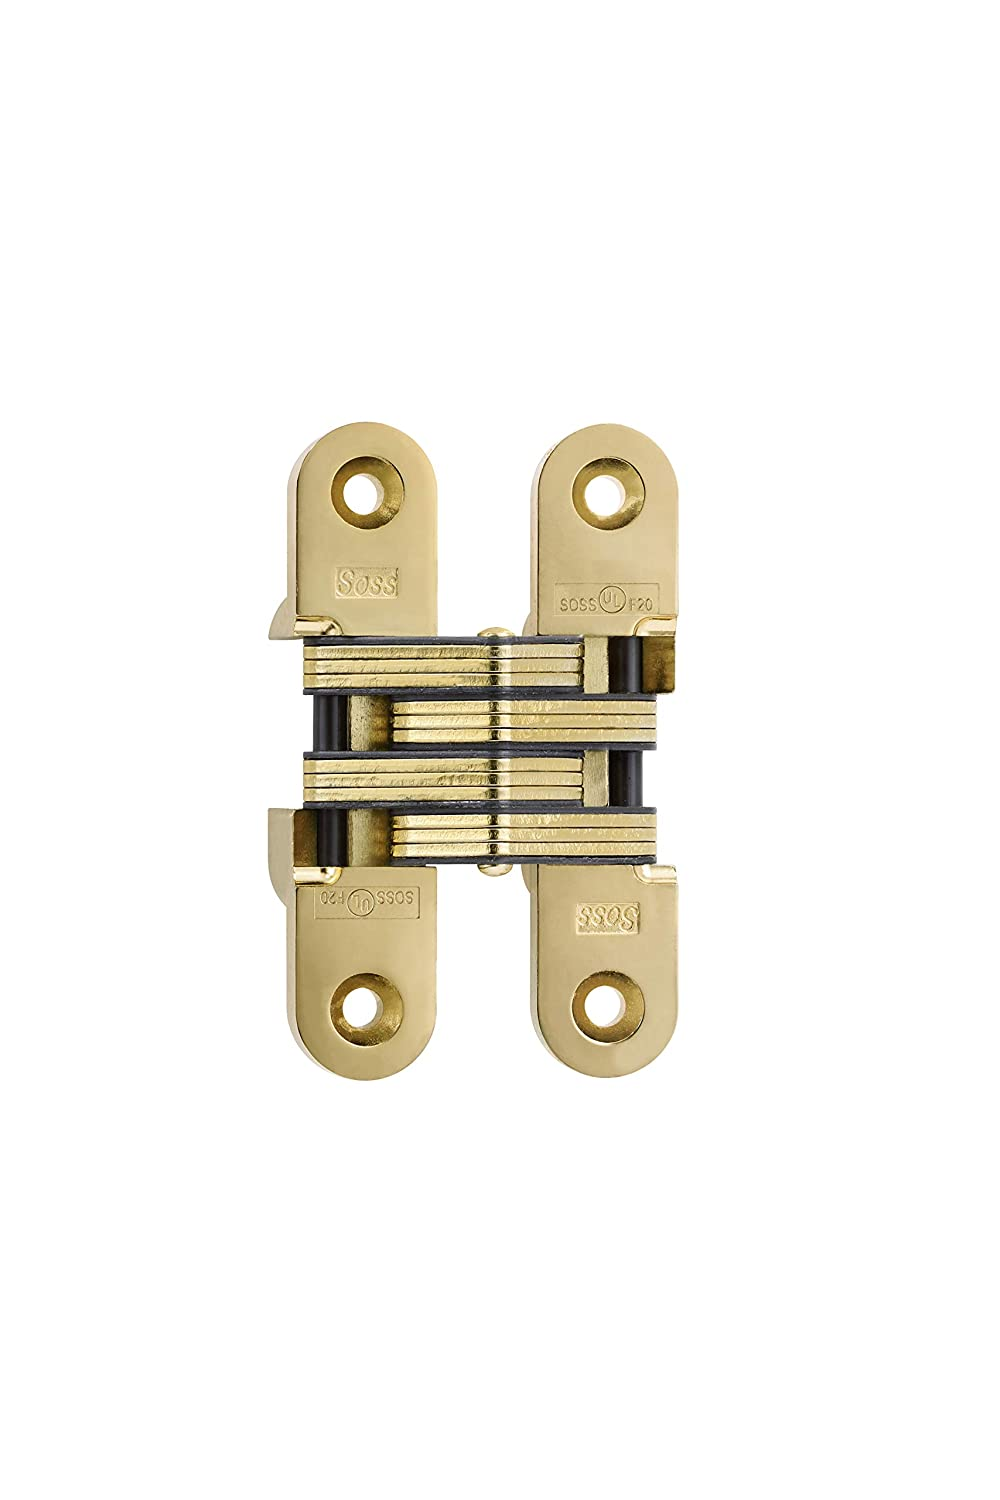 SOSS 220 Zinc Invisible Hinge with Holes for Wood or Metal Applications Antique Brass Exterior Finish